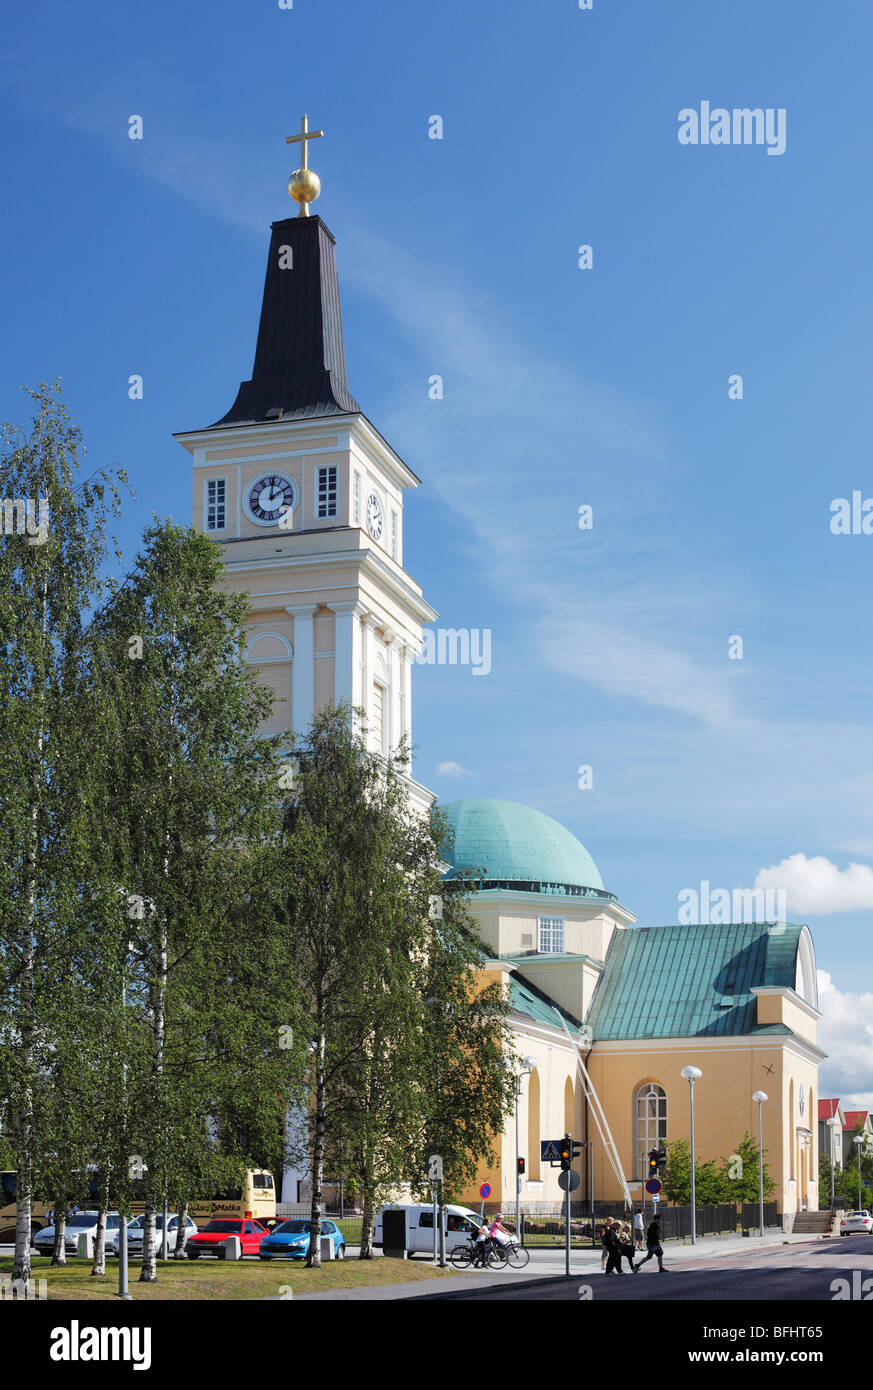 Cathedral in Oulu, Finland - Stock Image